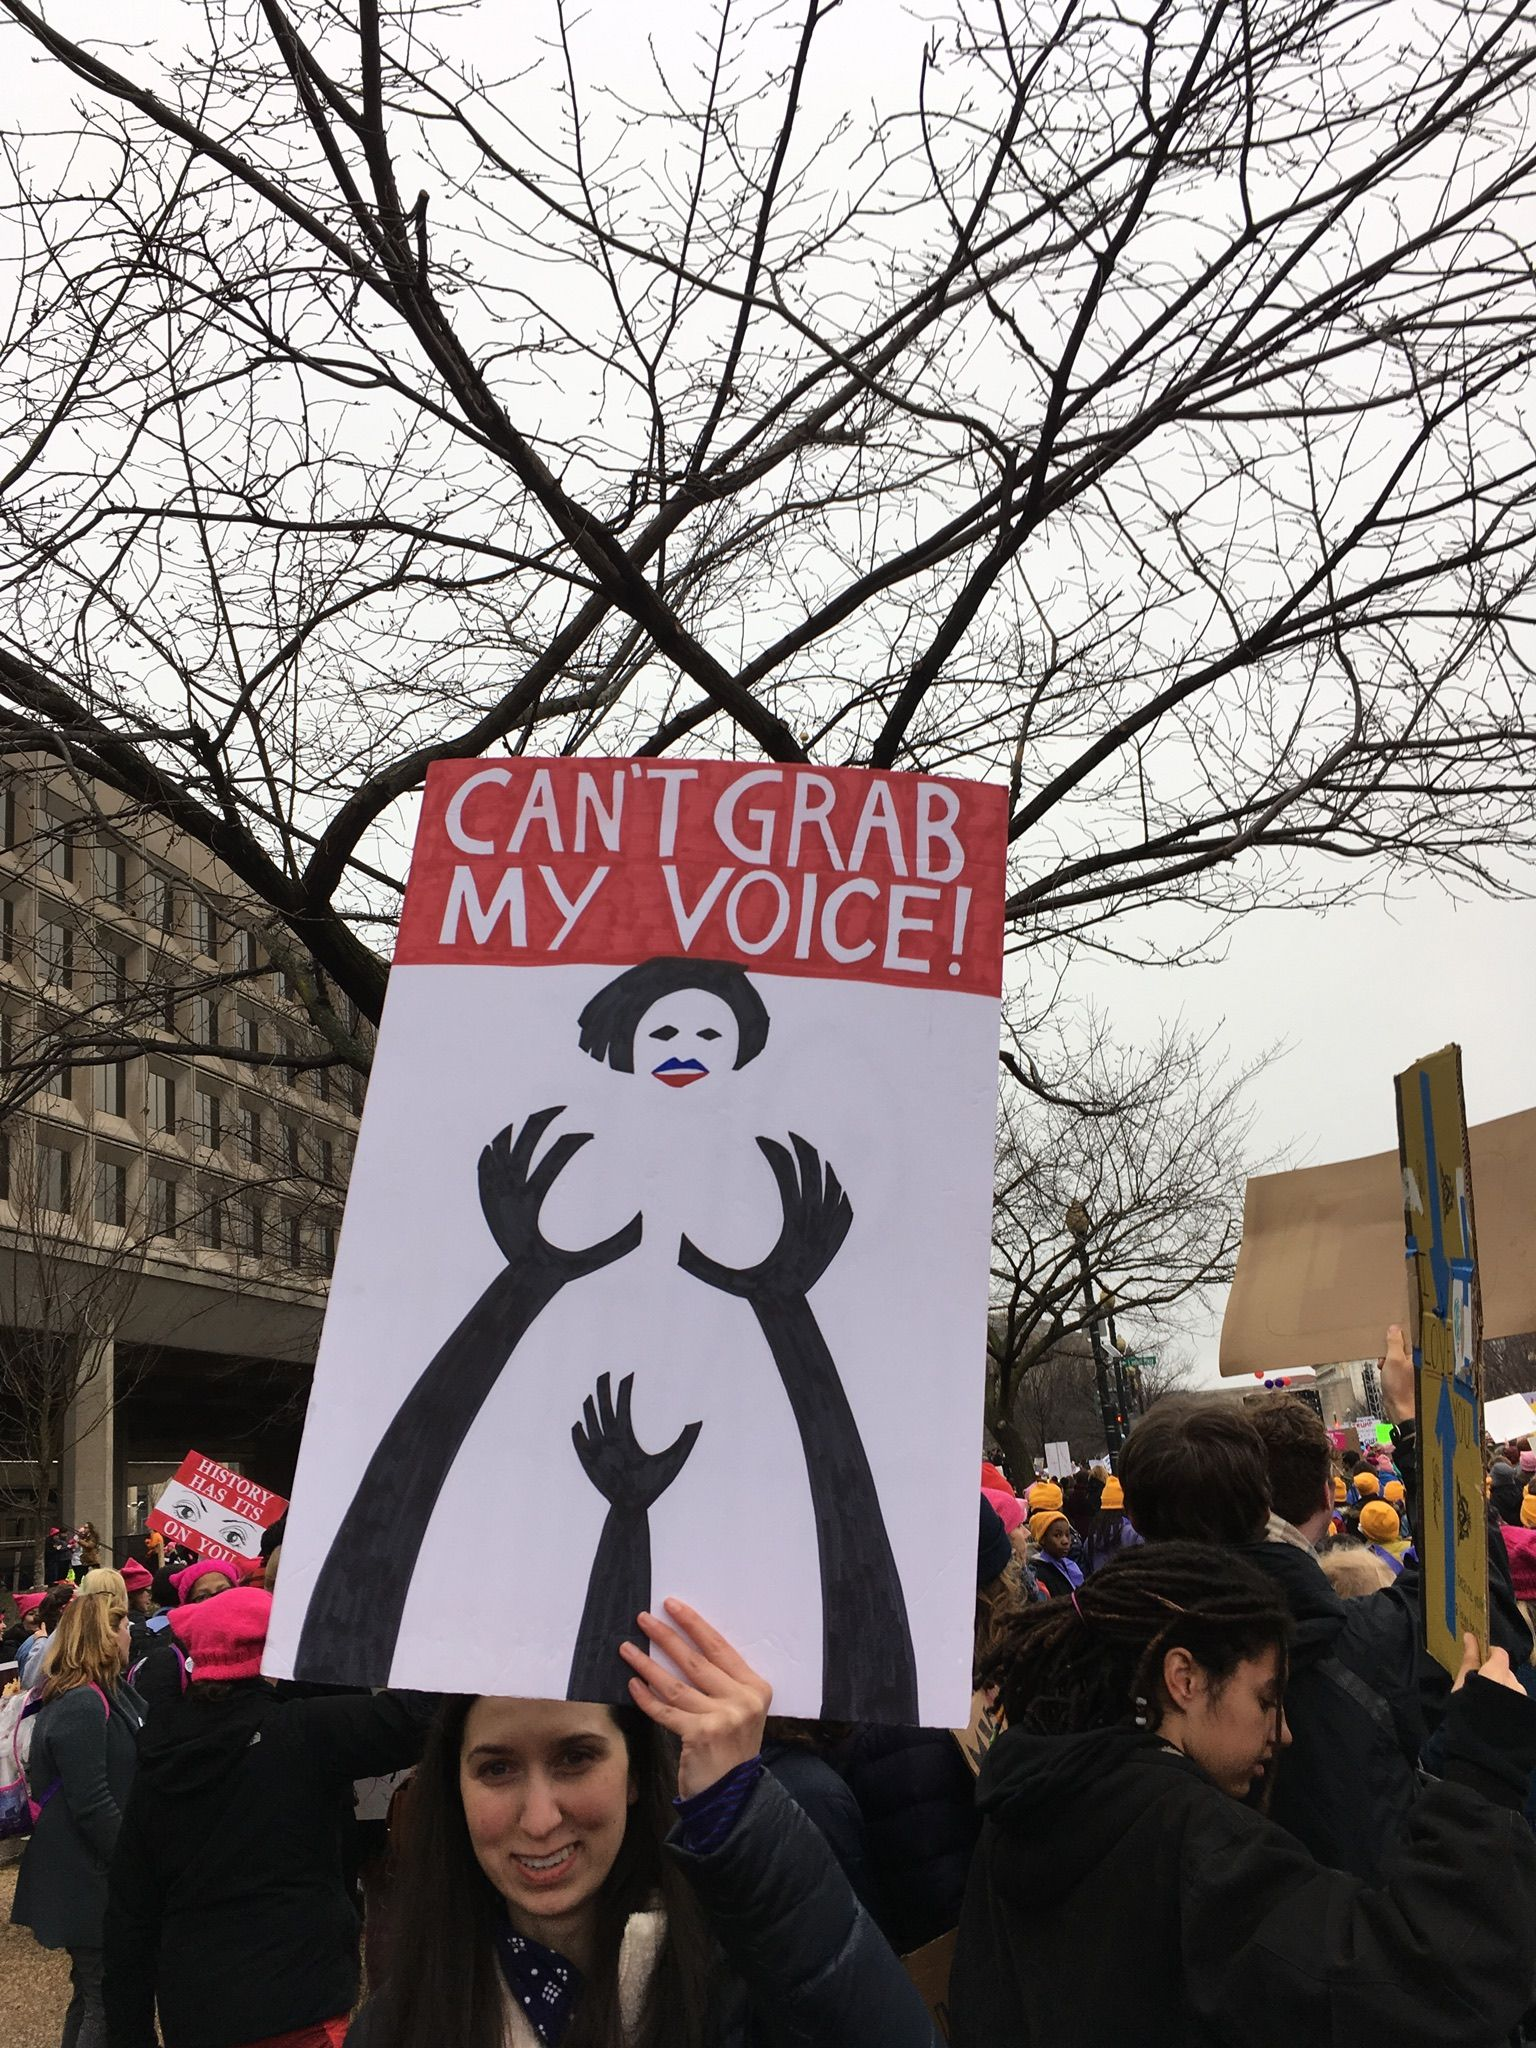 Can T Grab My Voice Protest Posters Womens March Posters Protest Signs